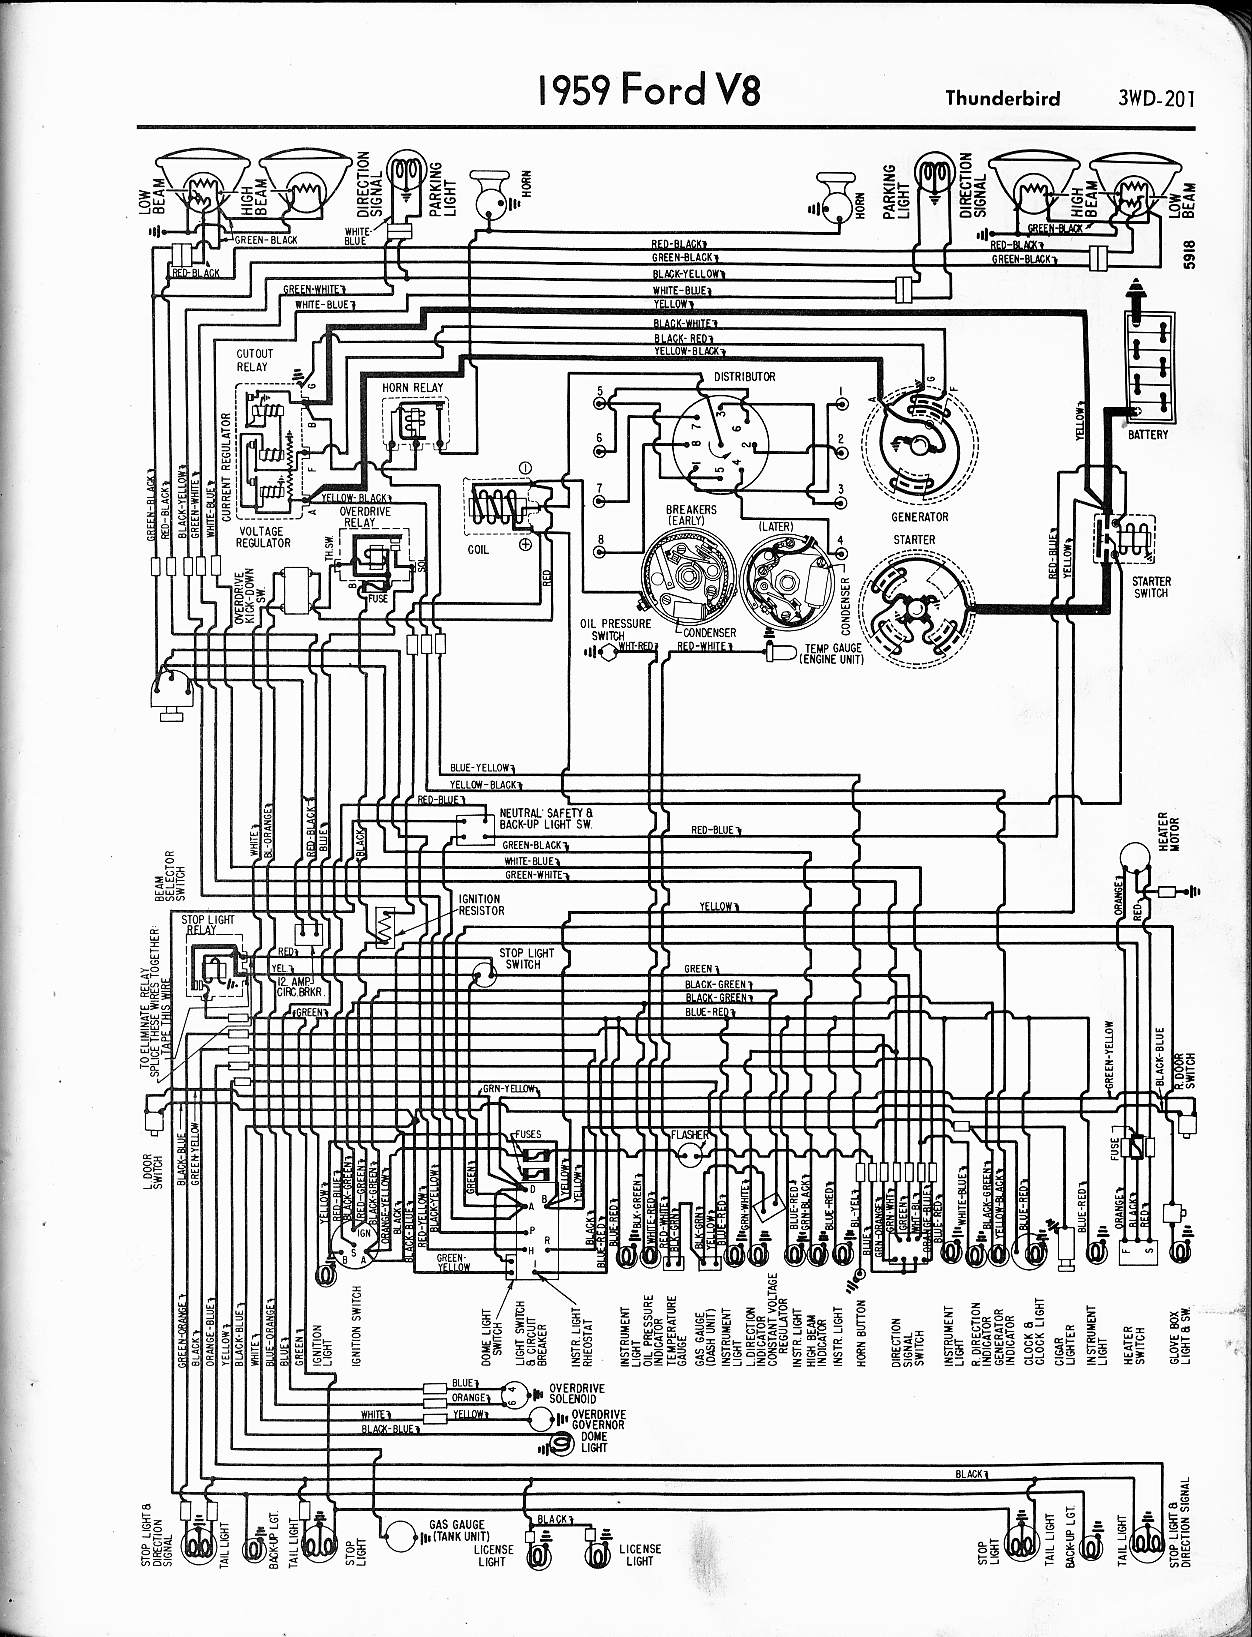 57 65 Ford Wiring Diagrams 1955 Ford Wiring Diagram 1956 Ford Wiring Diagram